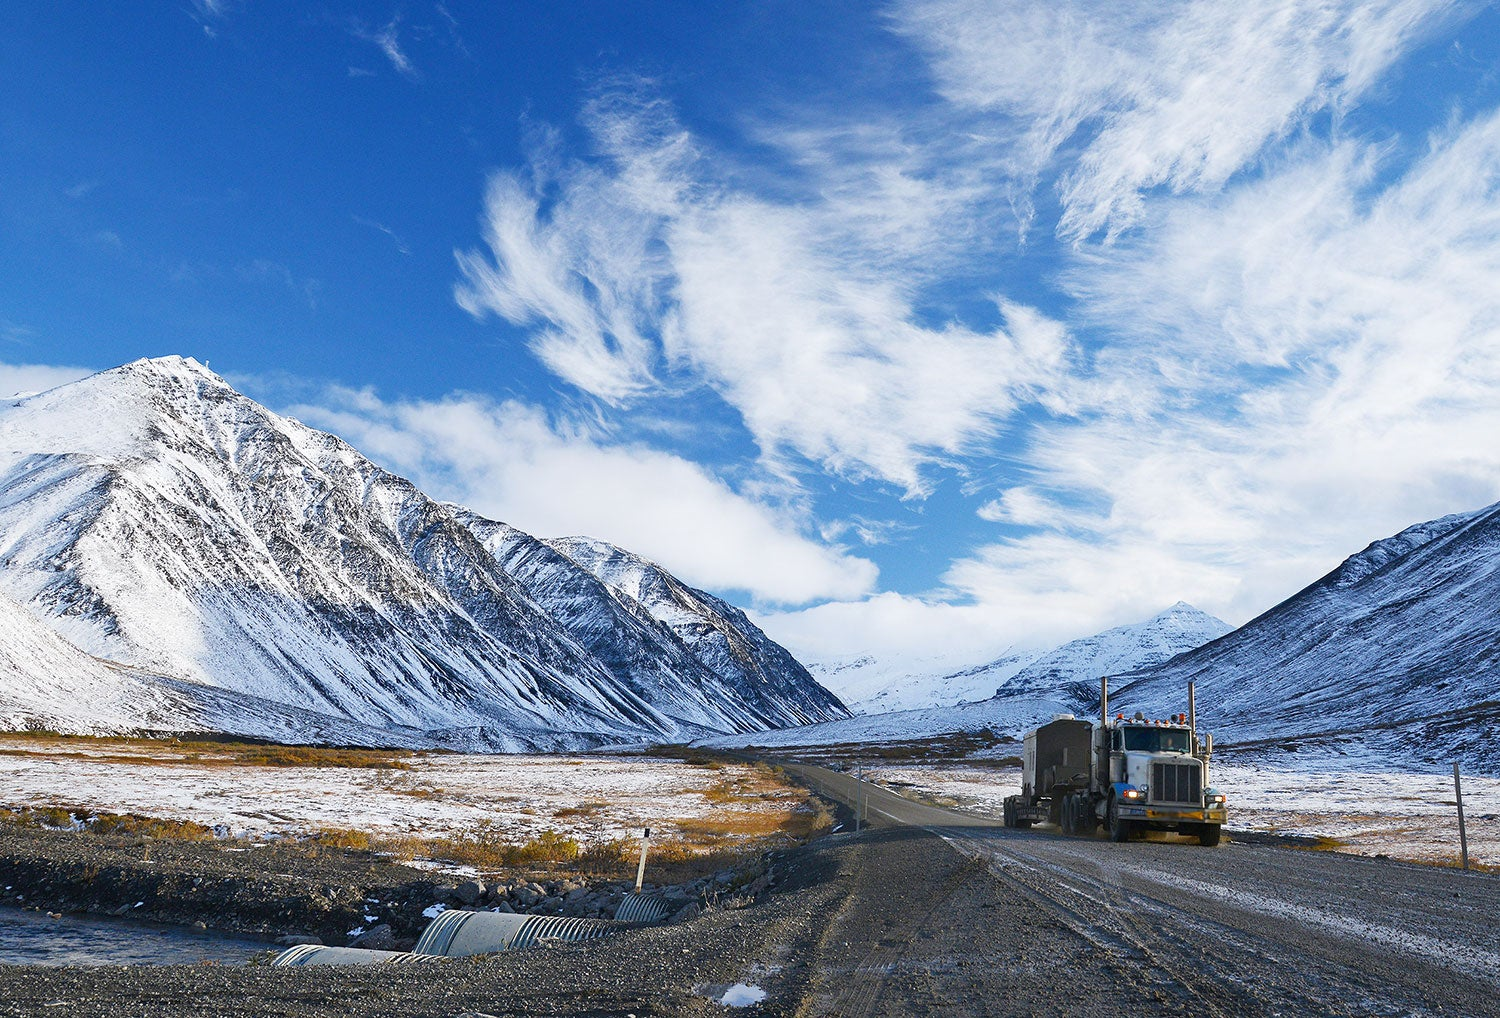 freight truck drives up a snowy dalton highway with mountains visible in the distance